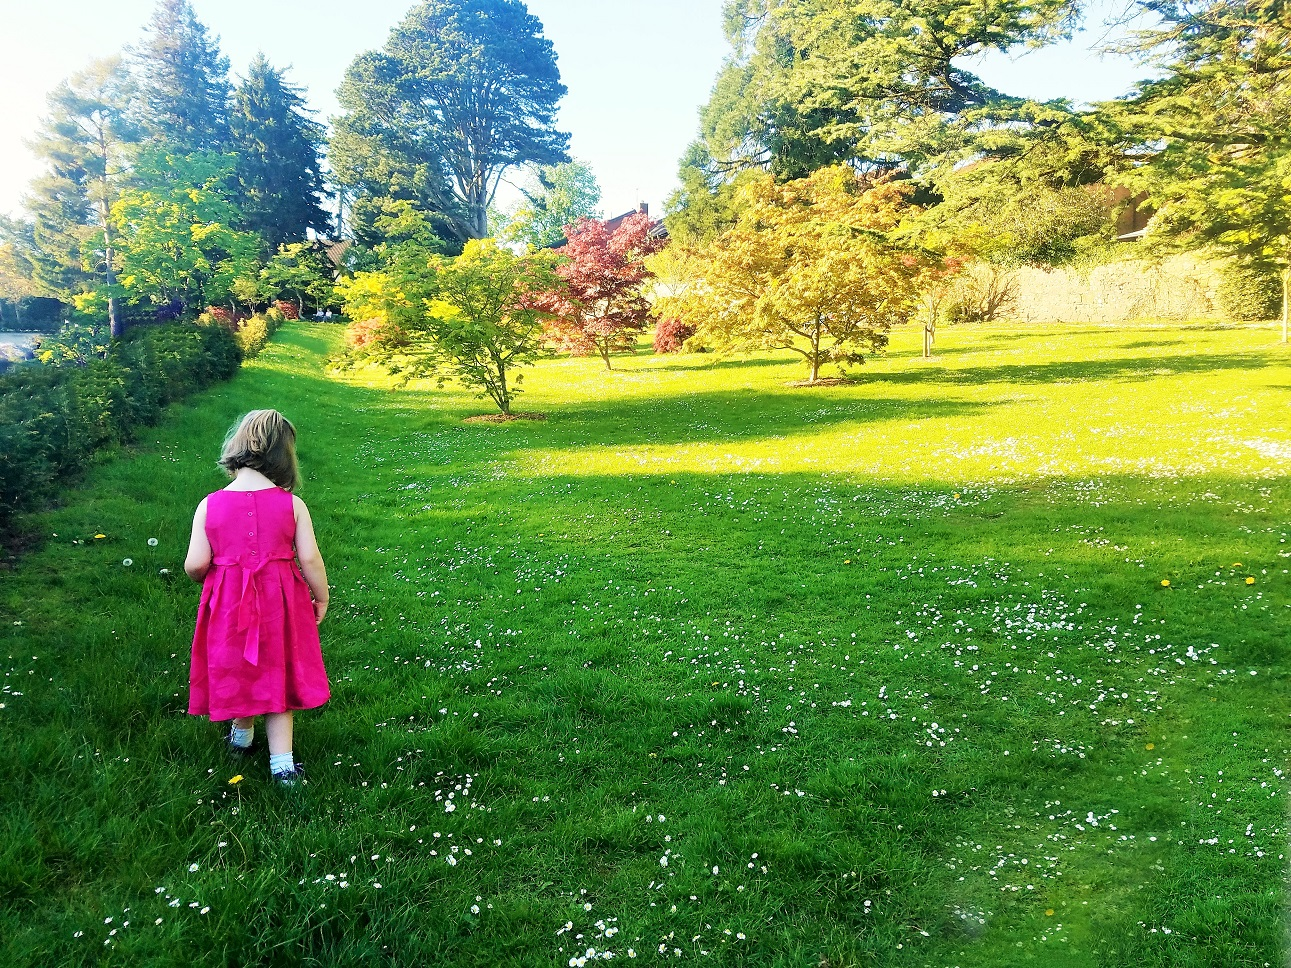 Mums With L Plates Facebook Group - child wearing pink dress walking through field